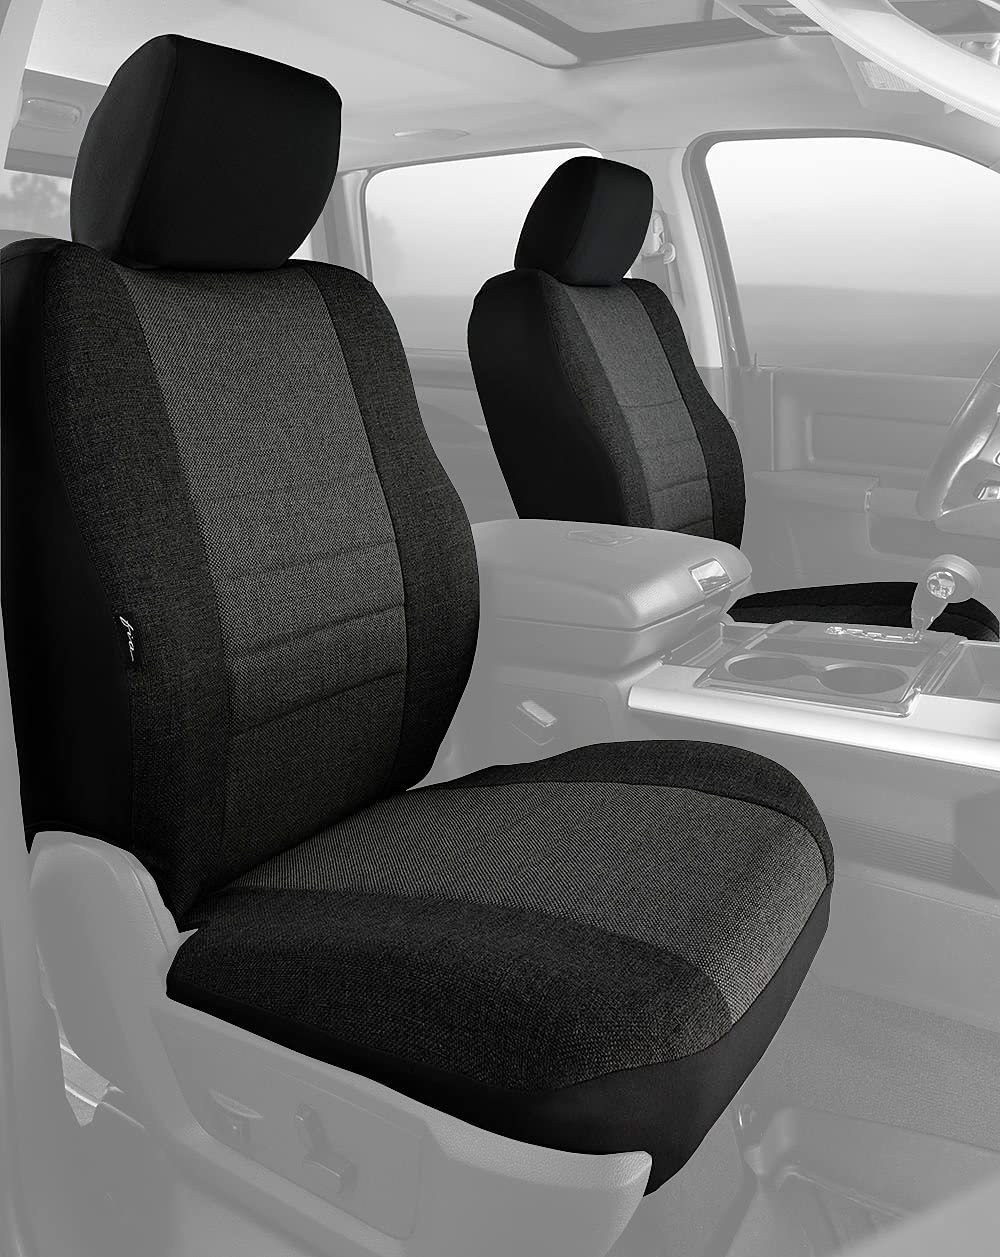 Leatherette Fia SL68-32 BLK//BLK Custom Fit Front Seat Cover Bucket Seats Solid Black